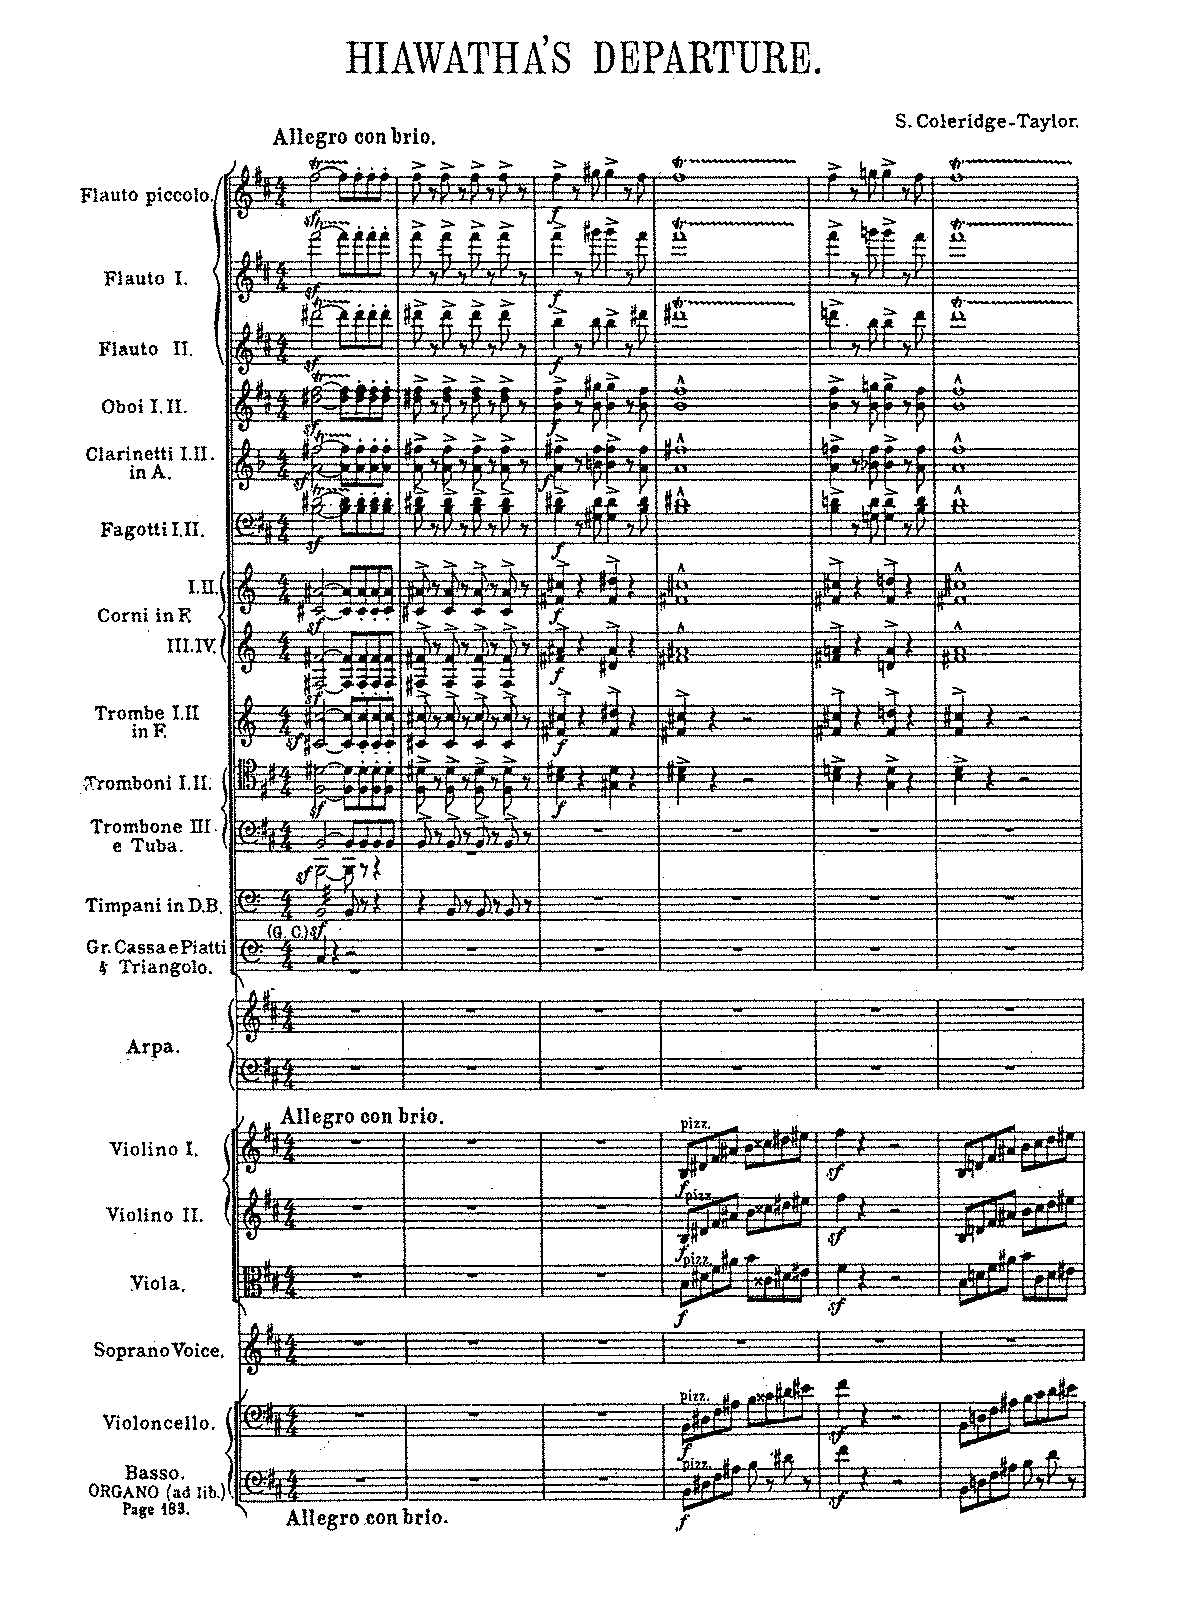 PMLP45230-Coleridge-Taylor - The Song of Hiawatha, Op.30 - No. 4 Hiawatha's Departure (orch. score).pdf